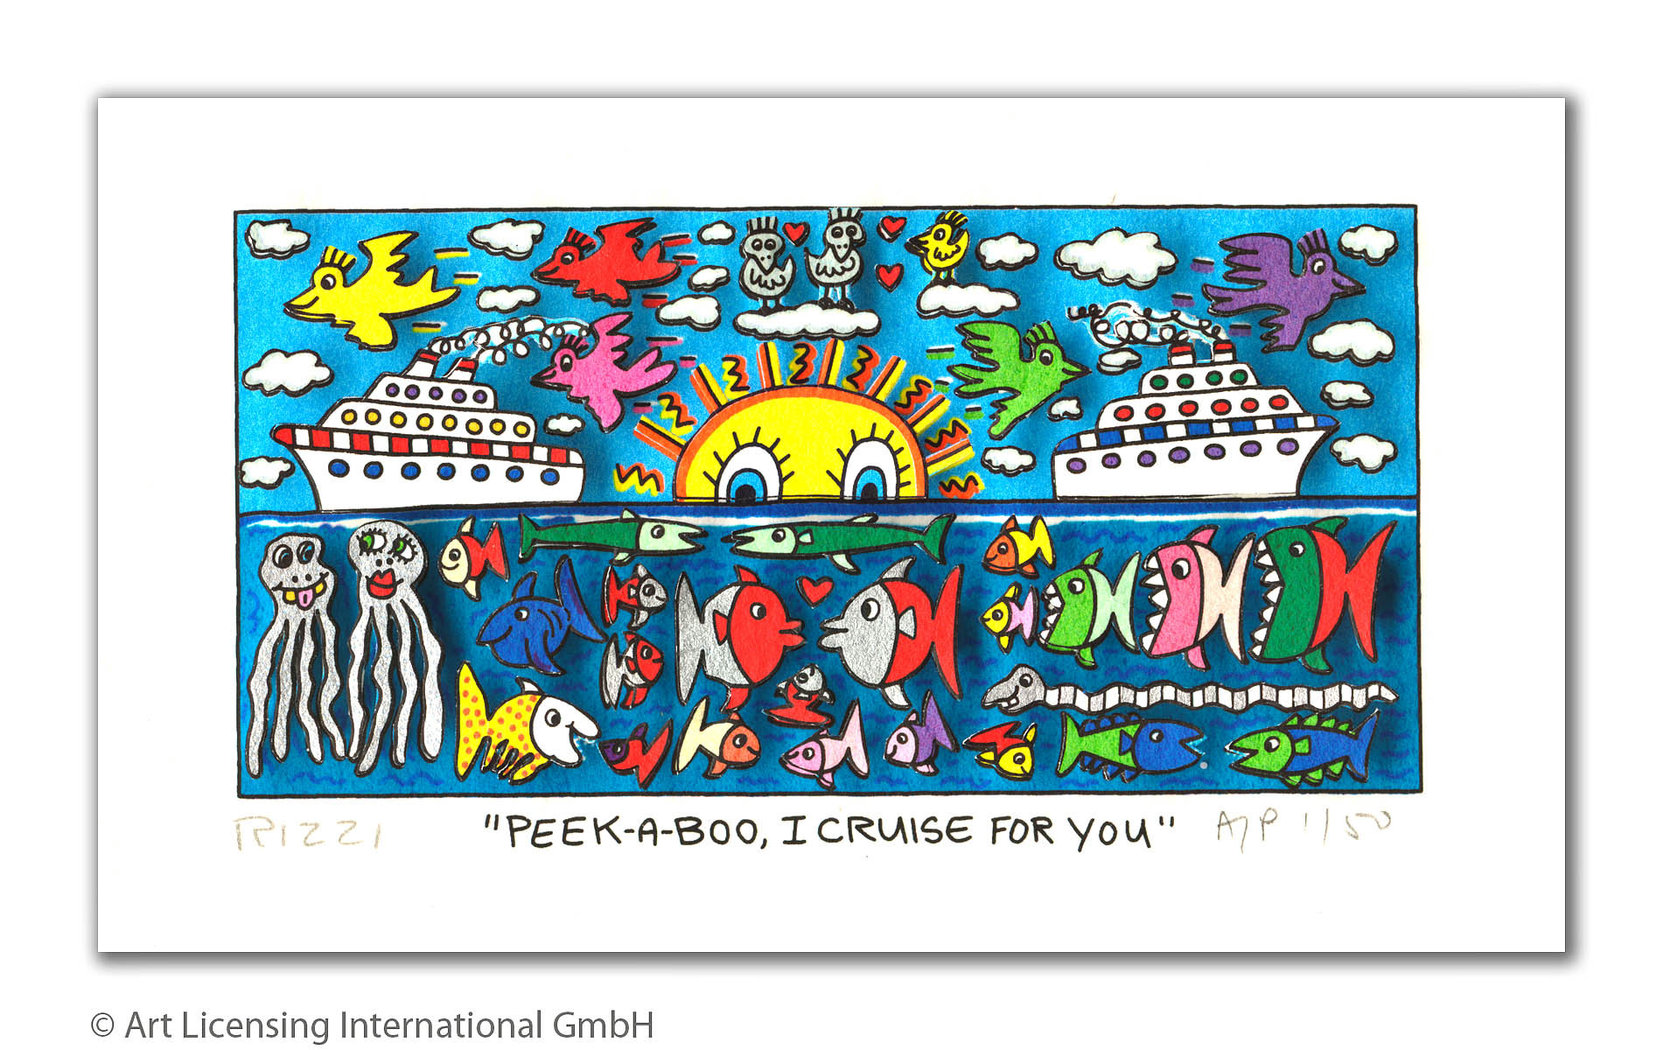 James Rizzi - PEEK-A-BOO, I CRUISE FOR YOU